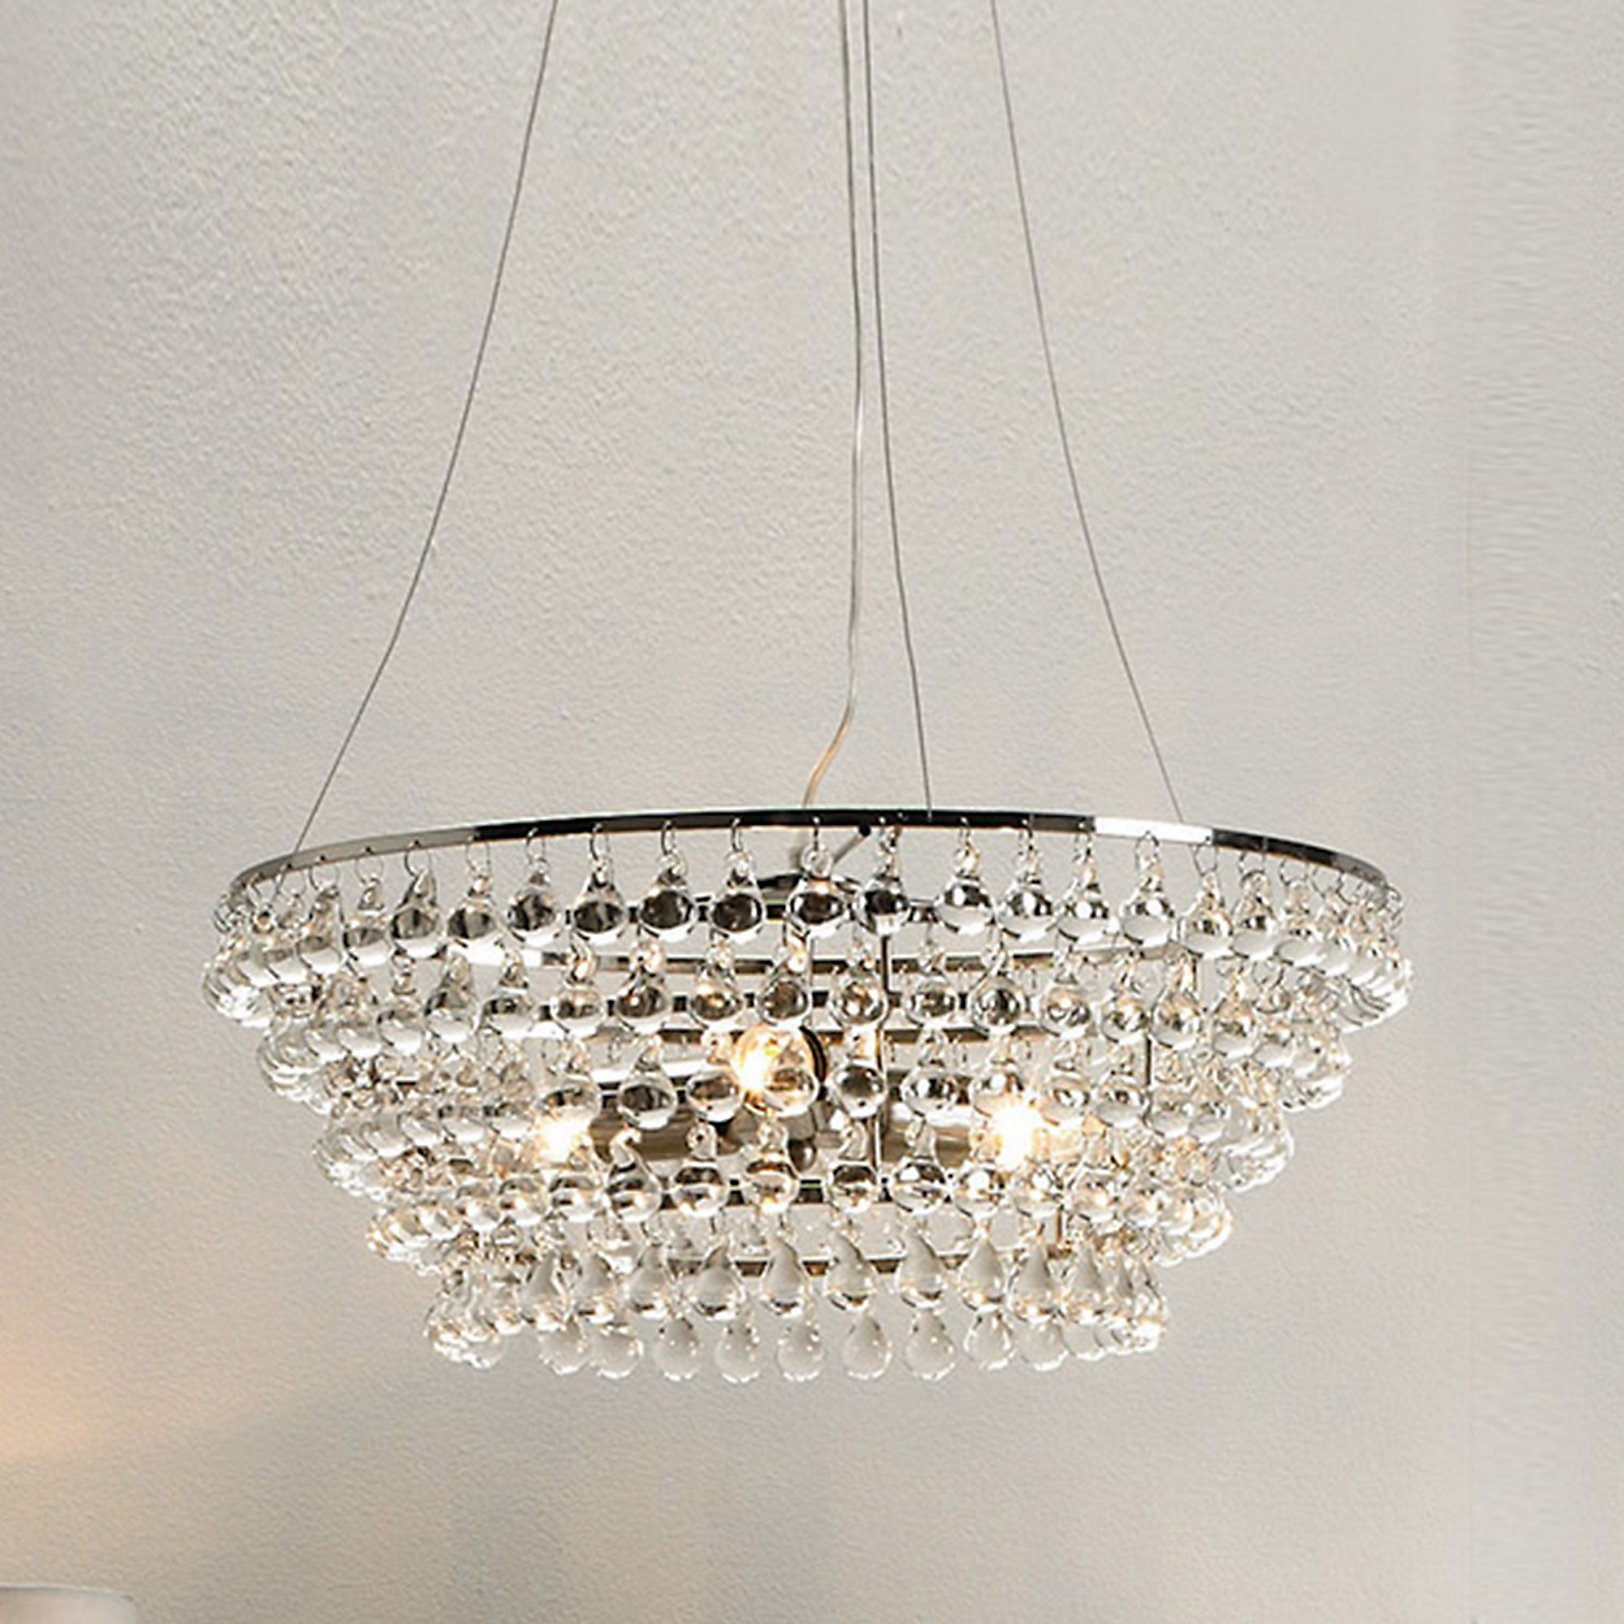 Dee would ask Santa for this beautiful ceiling light - she has specified it for clients in the past, but has also always wanted it for her own front room too!